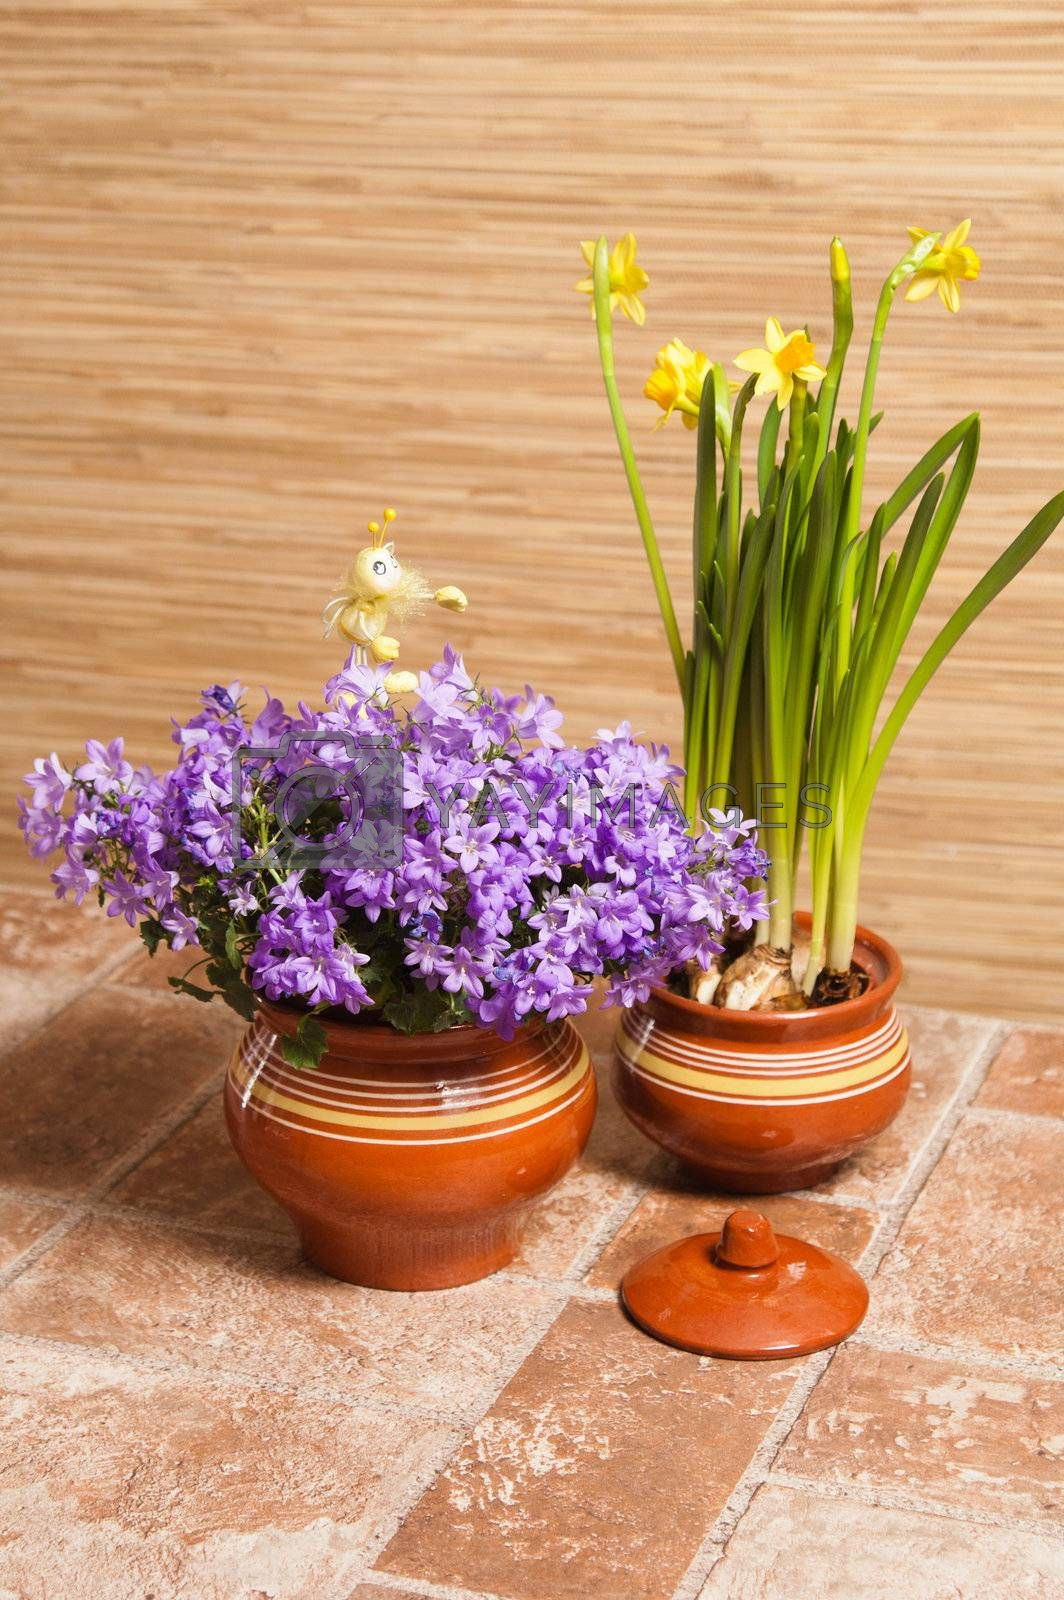 Pots with flowers on a floor, a close up